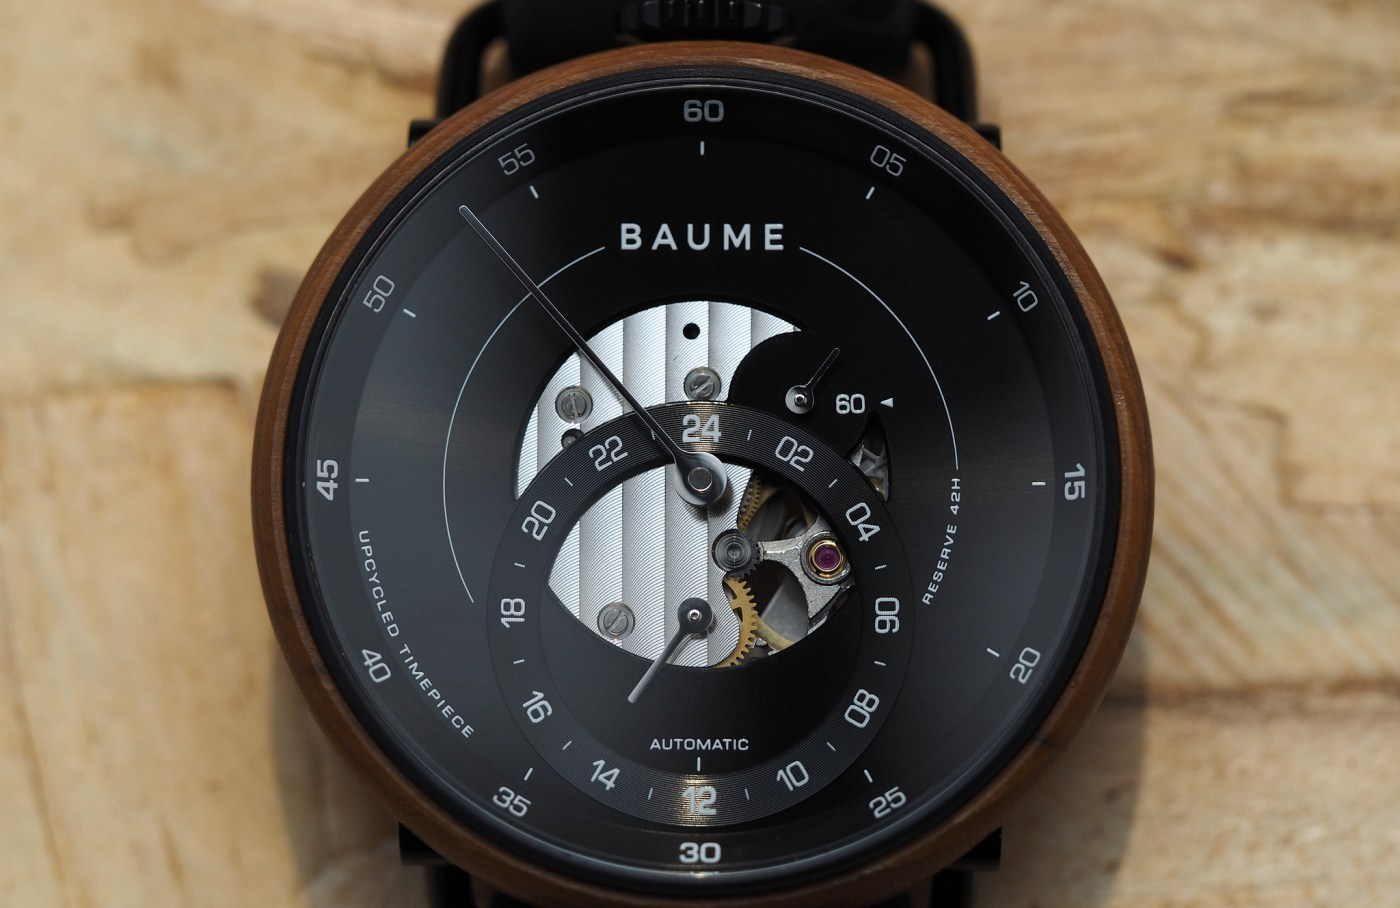 Baume HRS Limited Edition